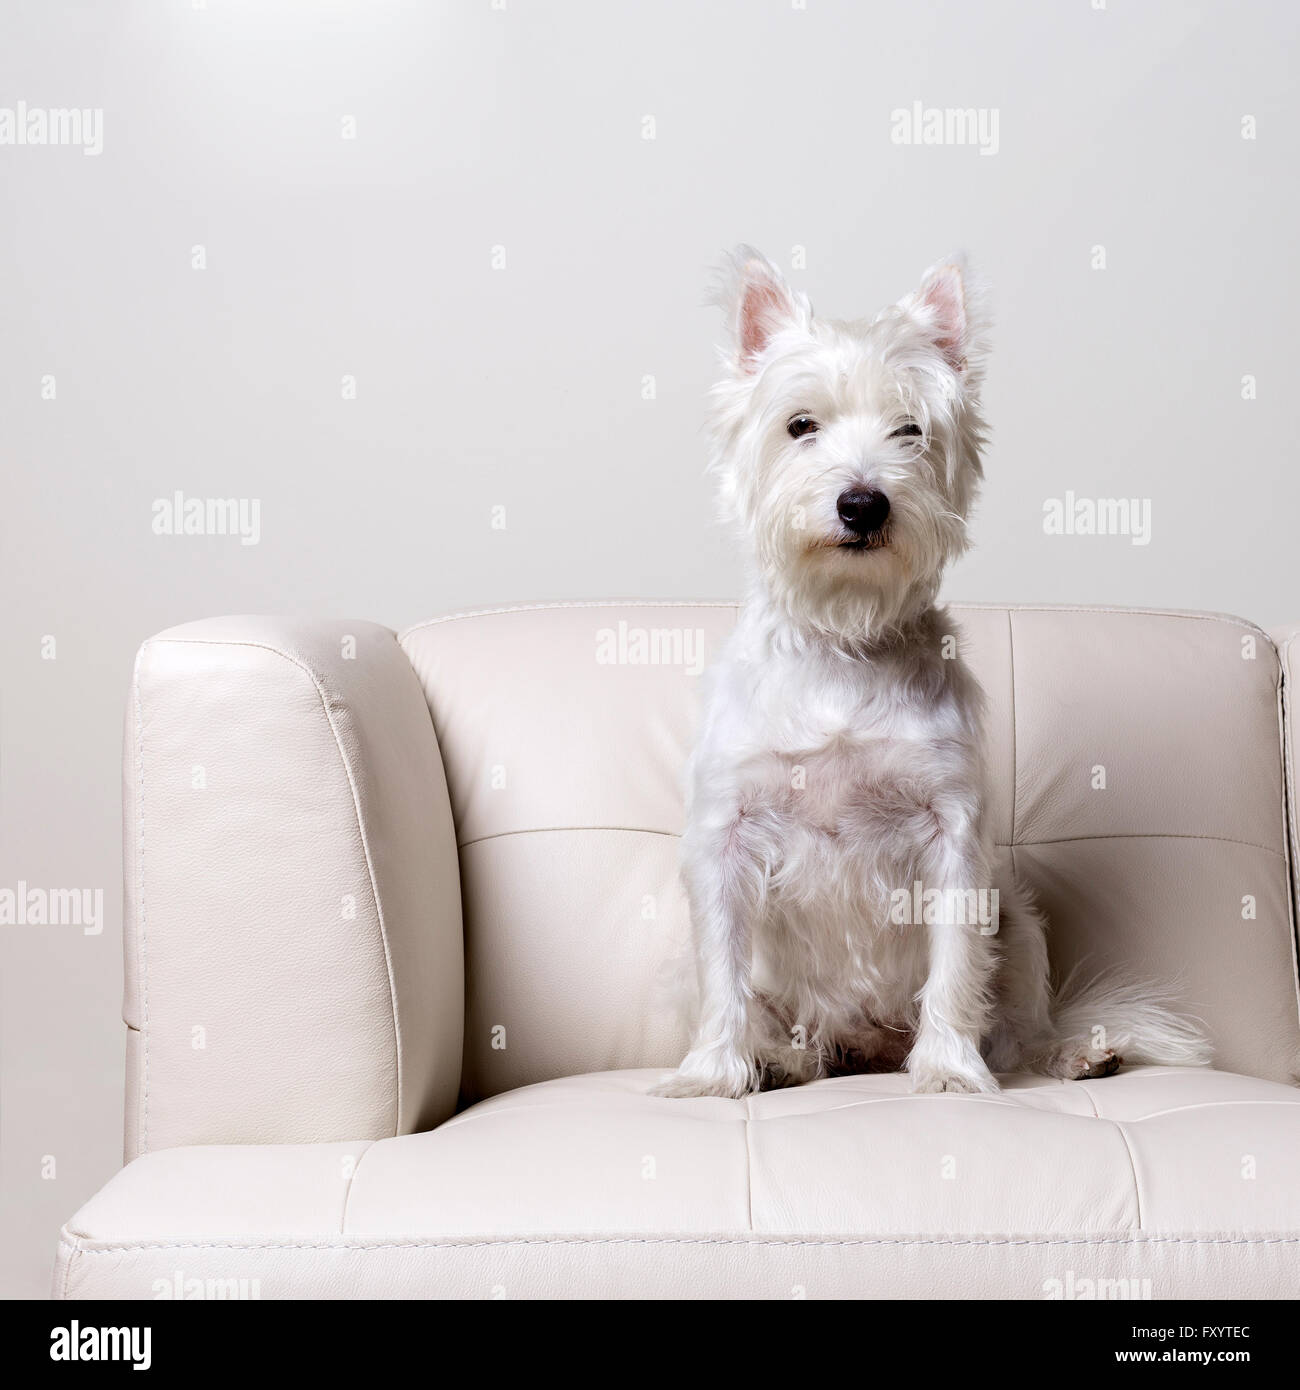 Pleasant A Small White Dog Sitting On A Modern White Leather Couch Forskolin Free Trial Chair Design Images Forskolin Free Trialorg